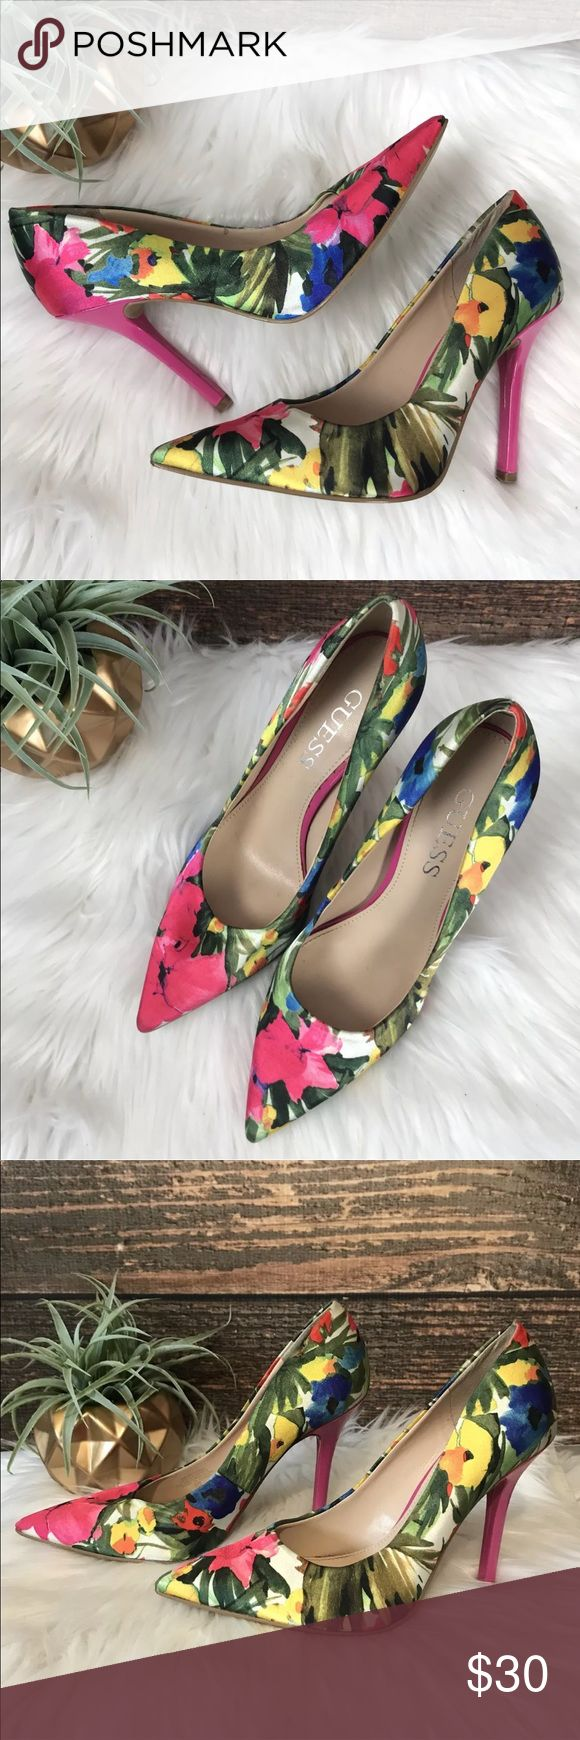 """Guess Neodan Floral Satin Pumps Guess Neodan5 Satin Floral Pumps Women's size 6 Pink patent 4"""" Heels Preowned condition One heel has some indents, minor scuff as seen in photos. Overall very good condition. Guess Shoes Heels"""